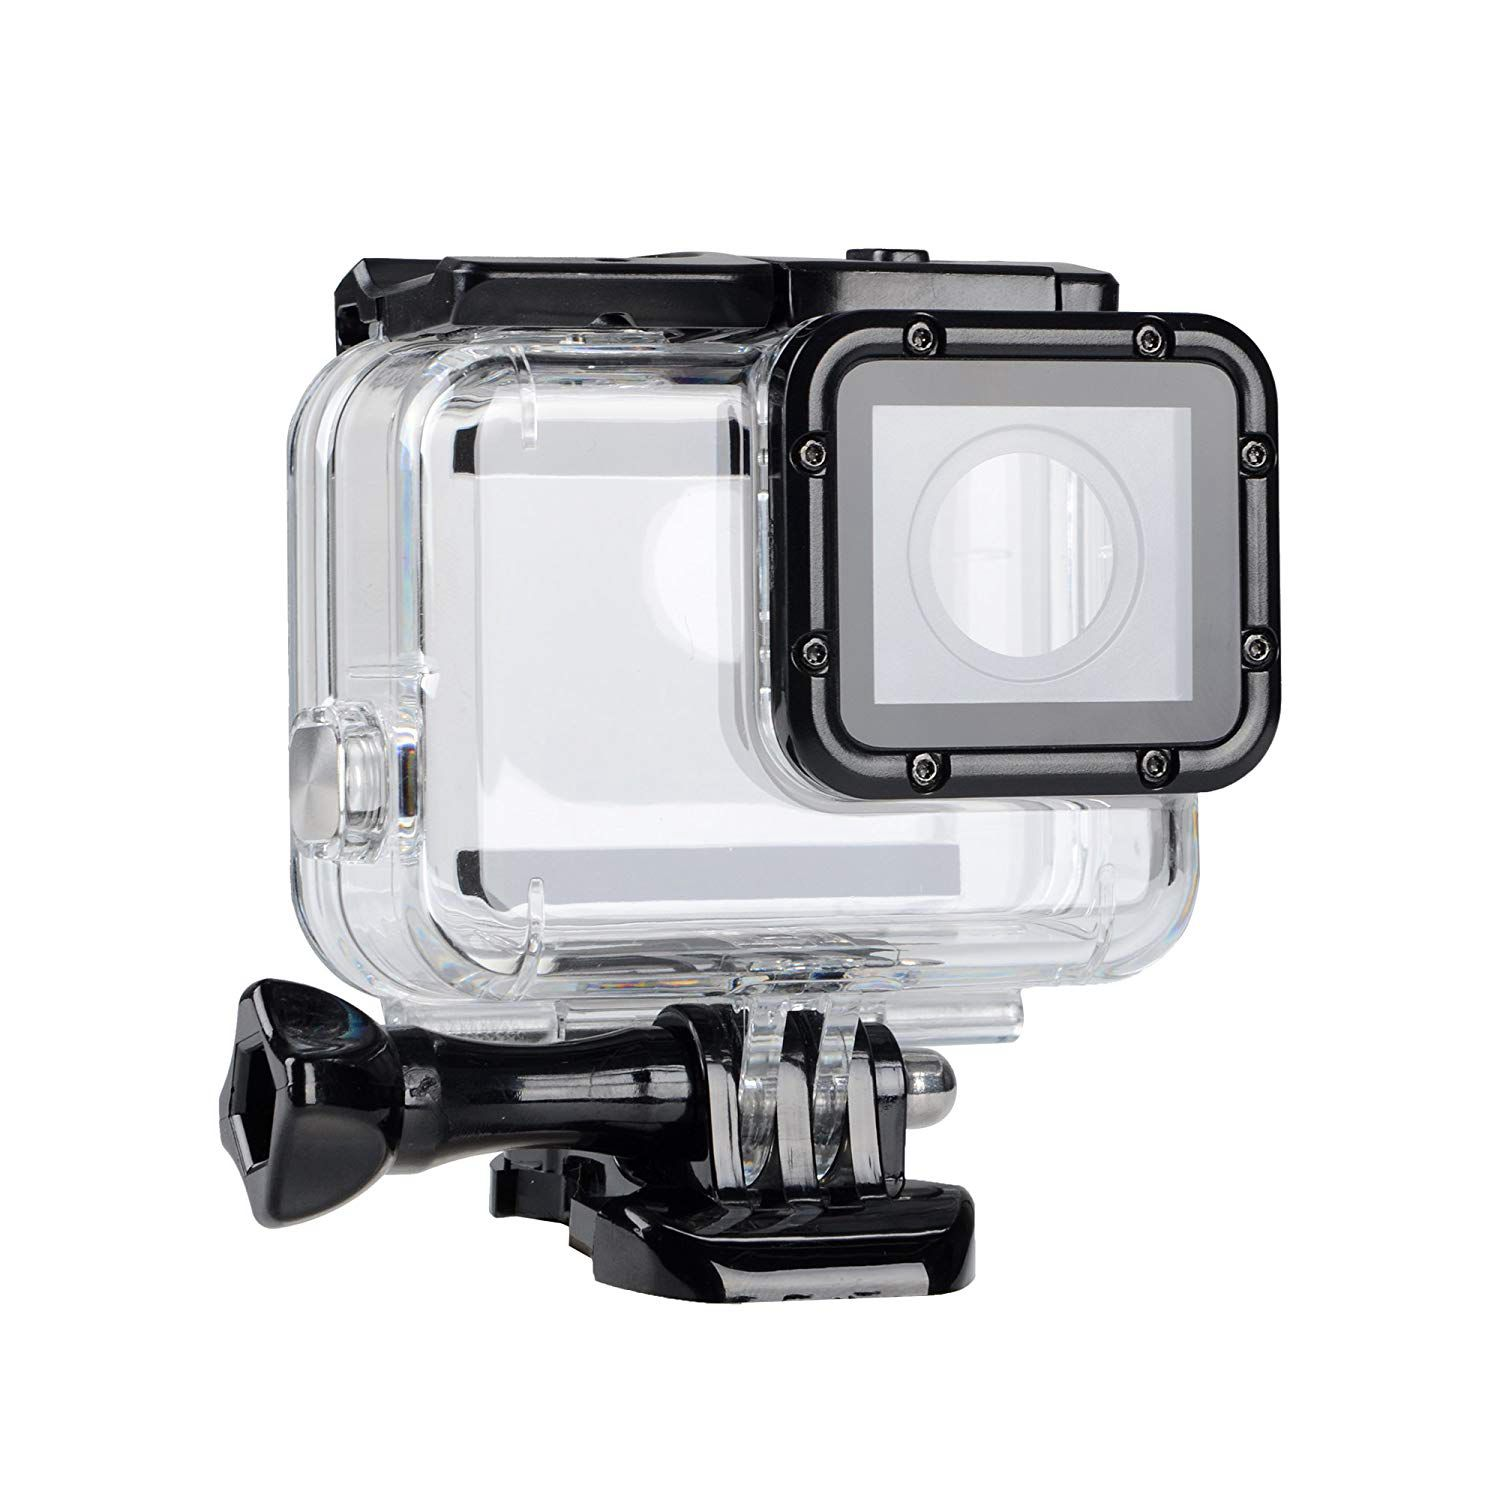 Waterproof Case Diving Protective Housing Shell 45m with Bracket Accessories for Go Pro Hero 2018 Hero7 Hero6 Hero5 Action Cam image